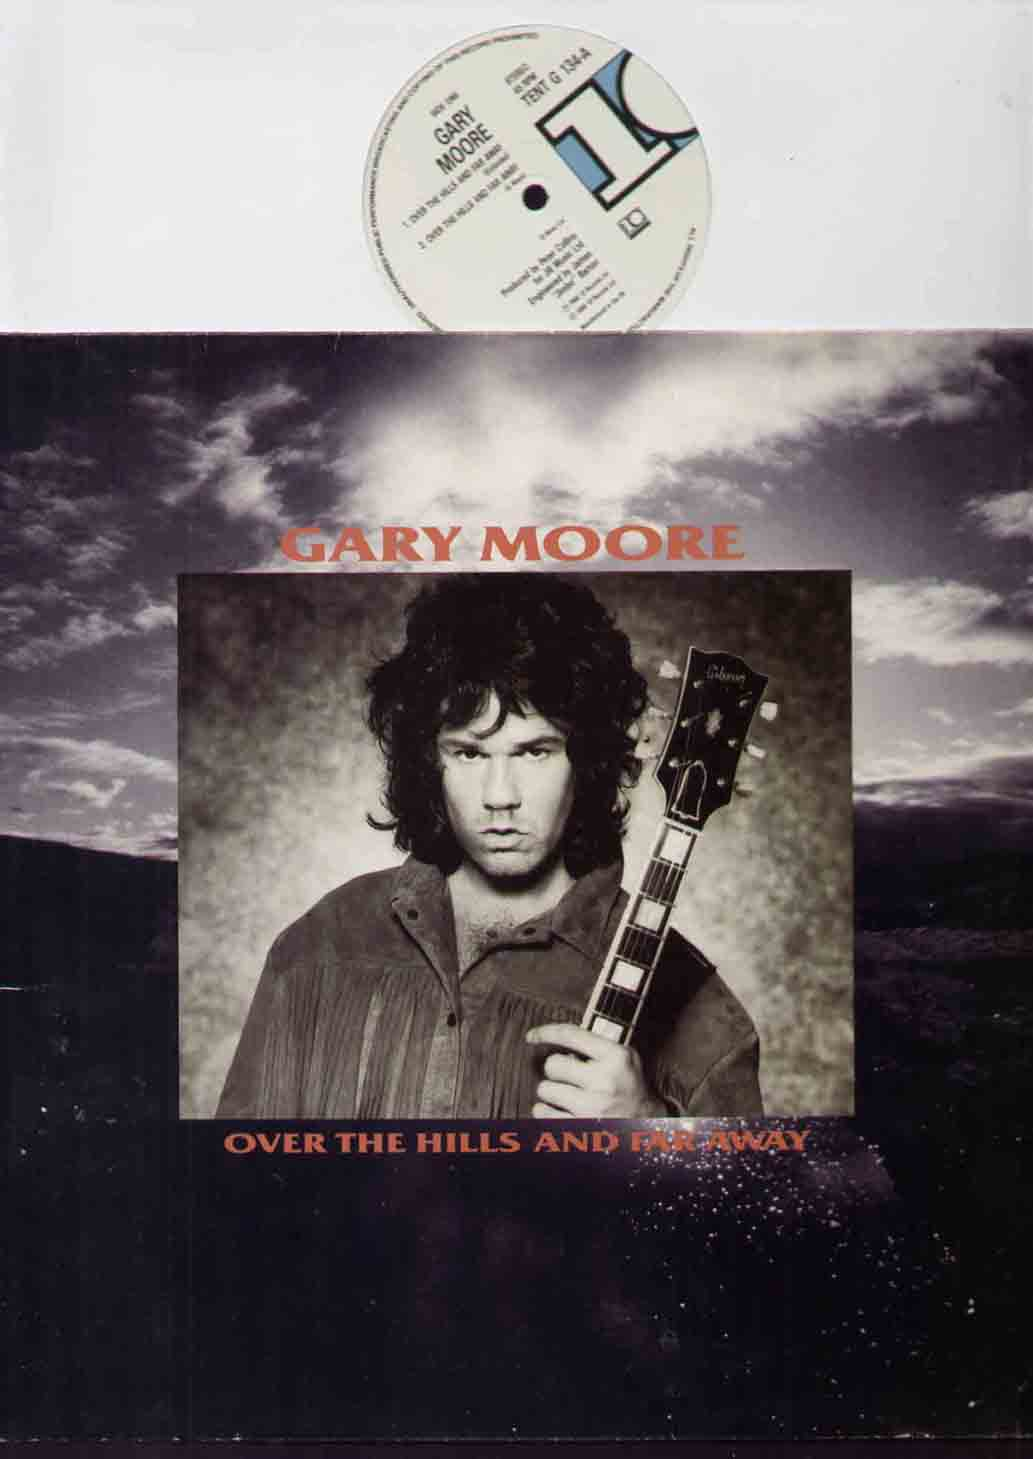 Over The Hills - GARY MOORE